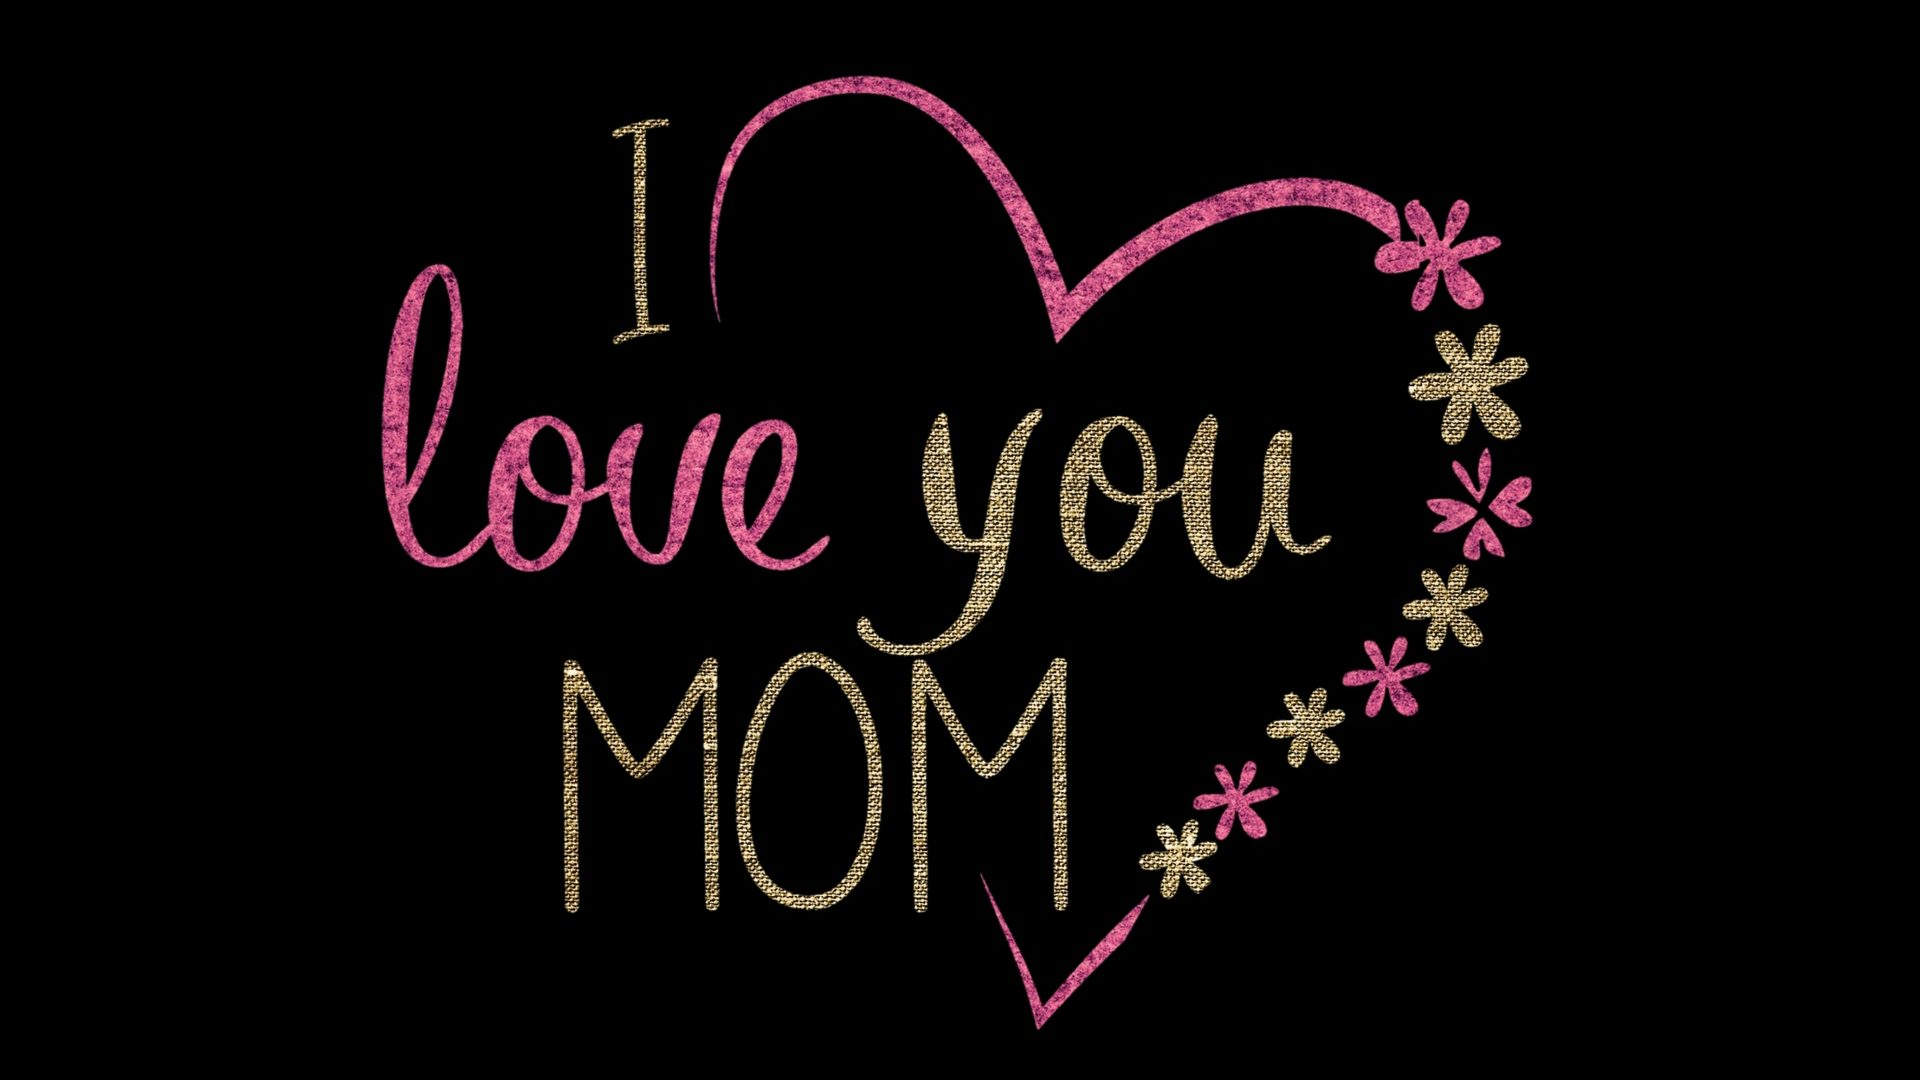 I Love You Mom Images Wallpaper Hd Wallpapers Stores